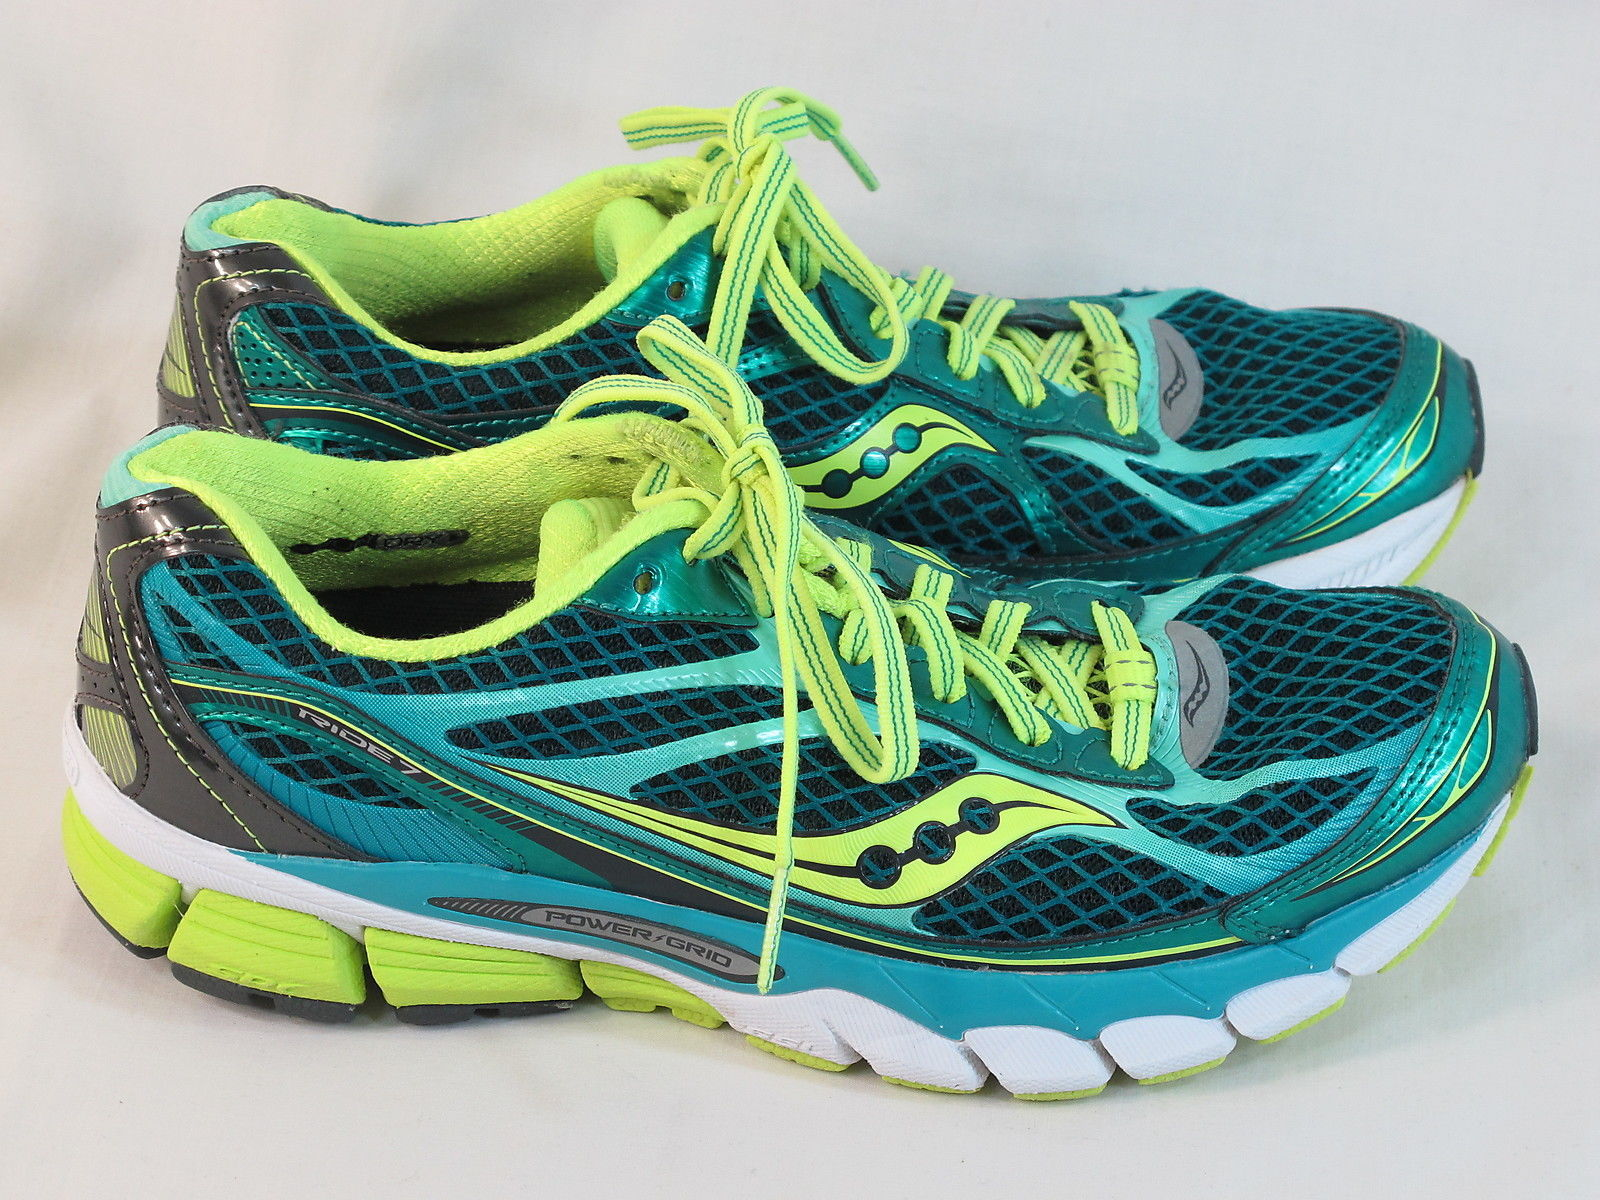 385296d0 Saucony Ride 7 Running Shoes Women's Size 8 and 50 similar items. S l1600